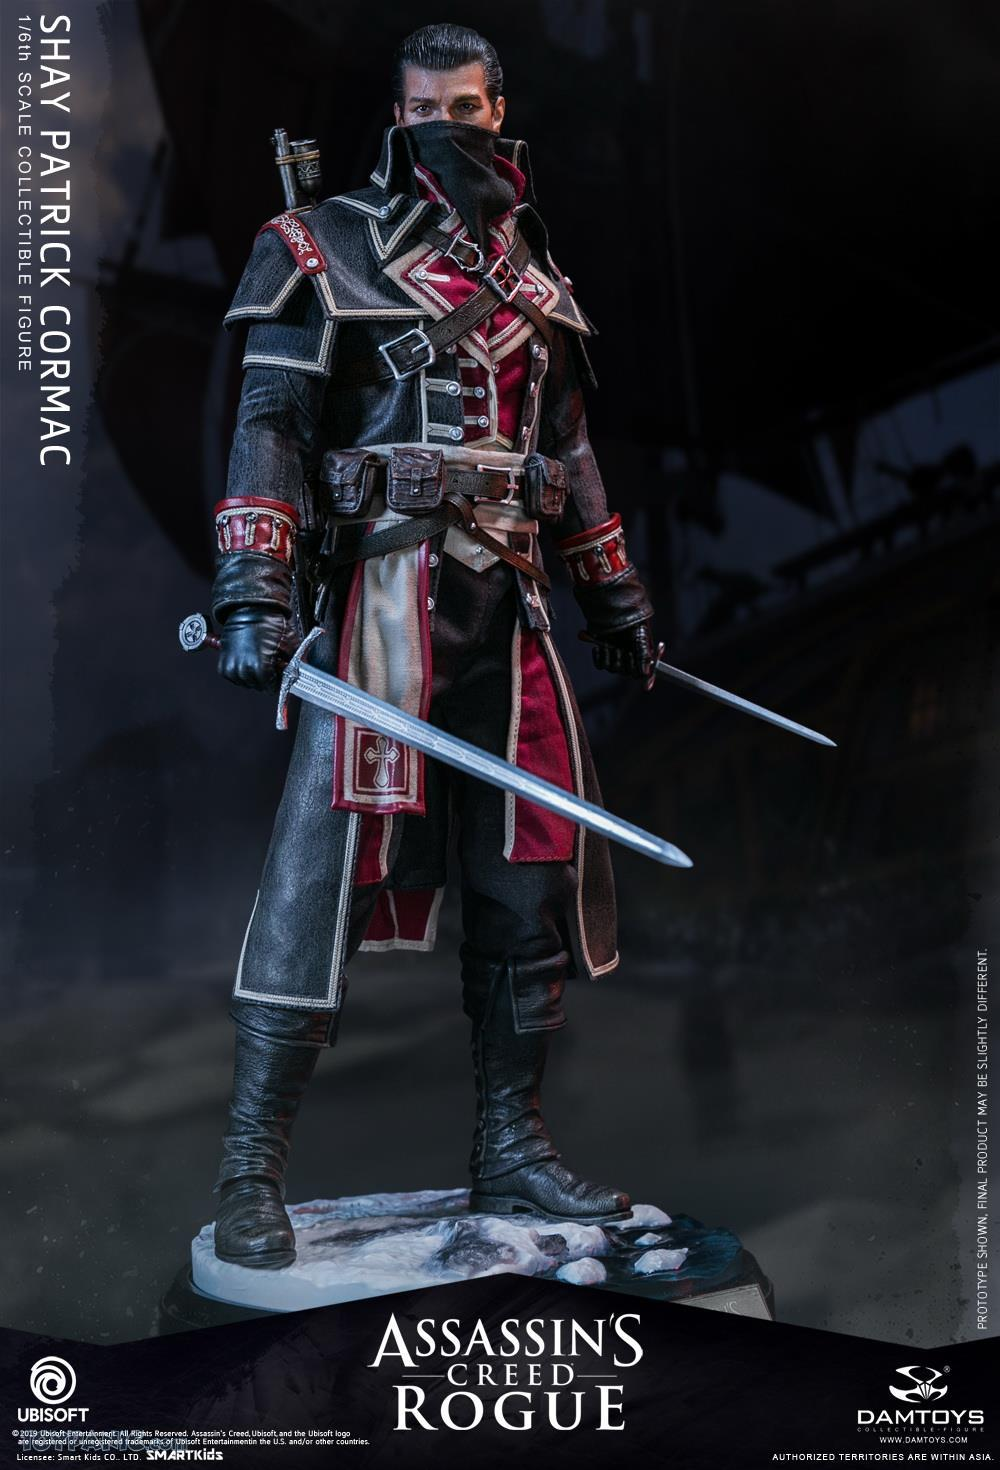 male - NEW PRODUCT: DAMTOYS: Assassins Creed Rogue - 1/6th scale Shay Patrick Cormac Collectible Figure 82220110